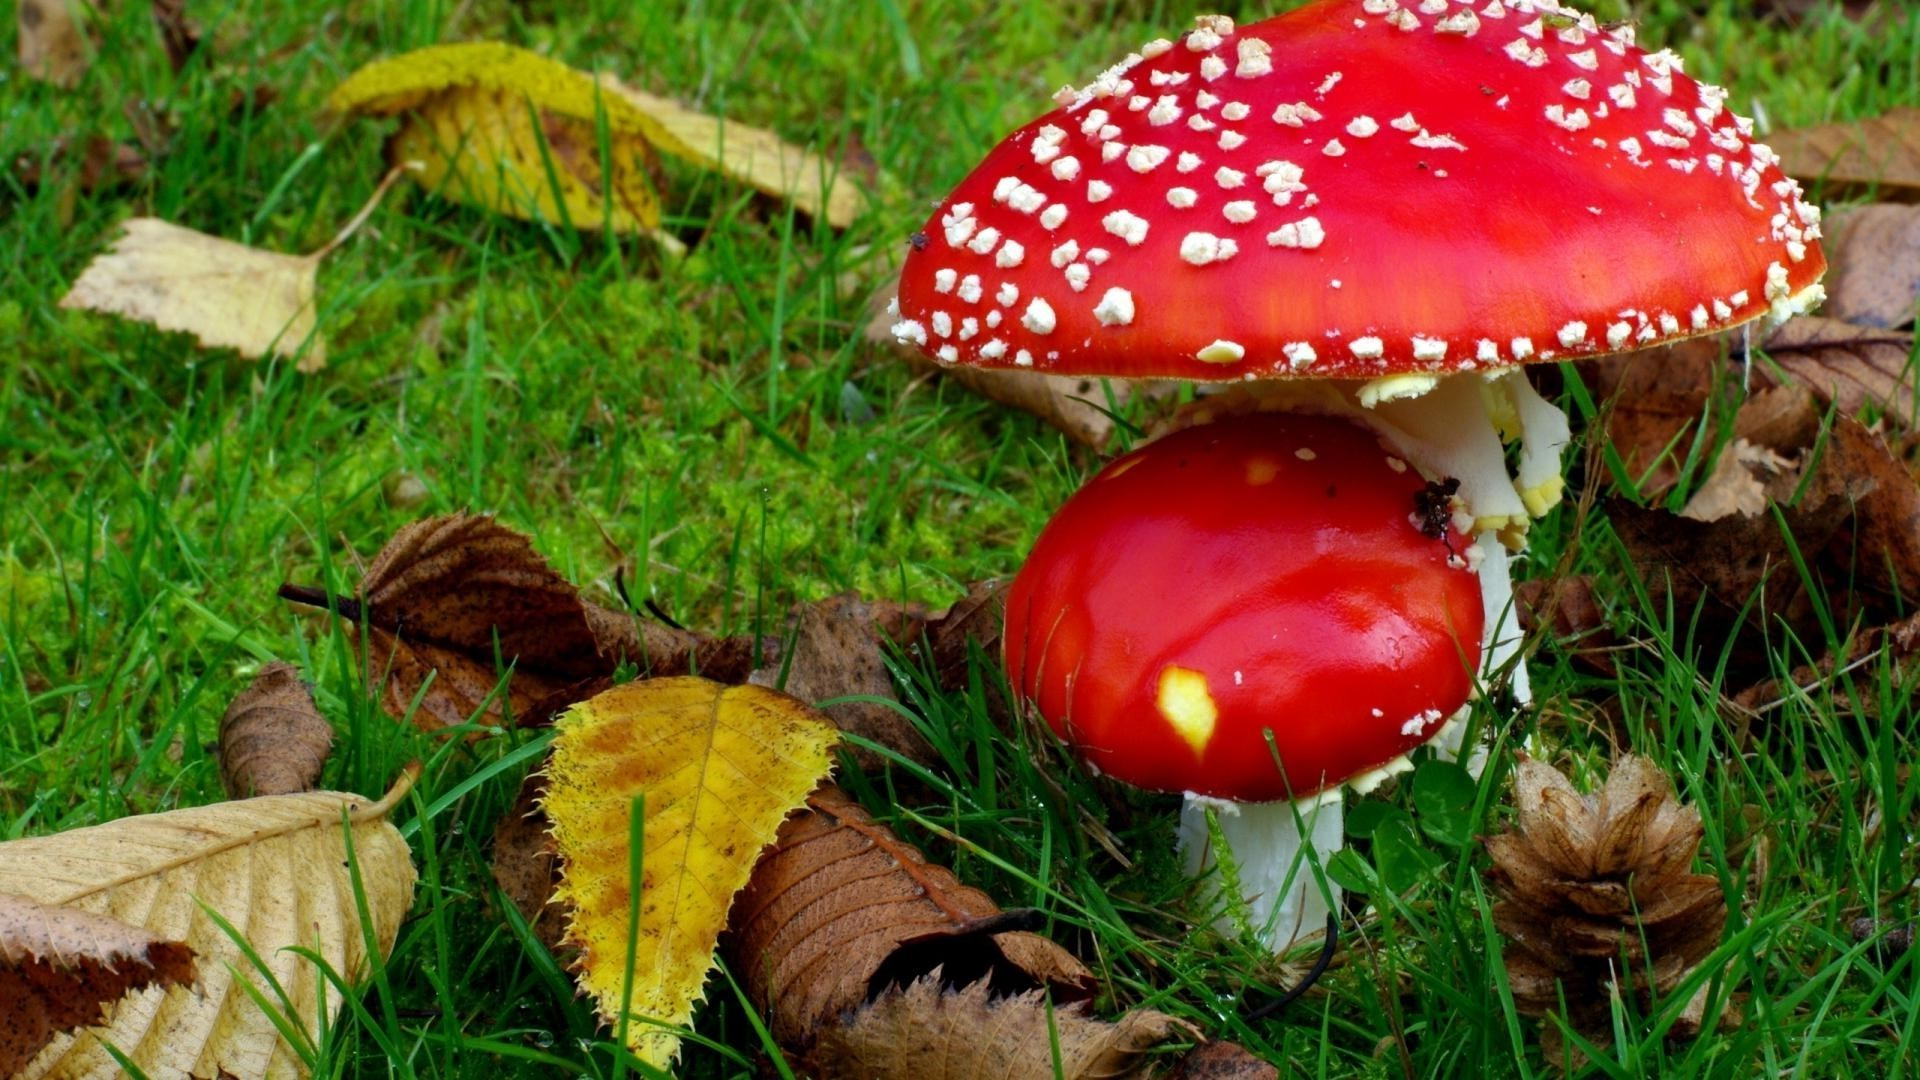 Mushrooms in the green grass and autumn leaves